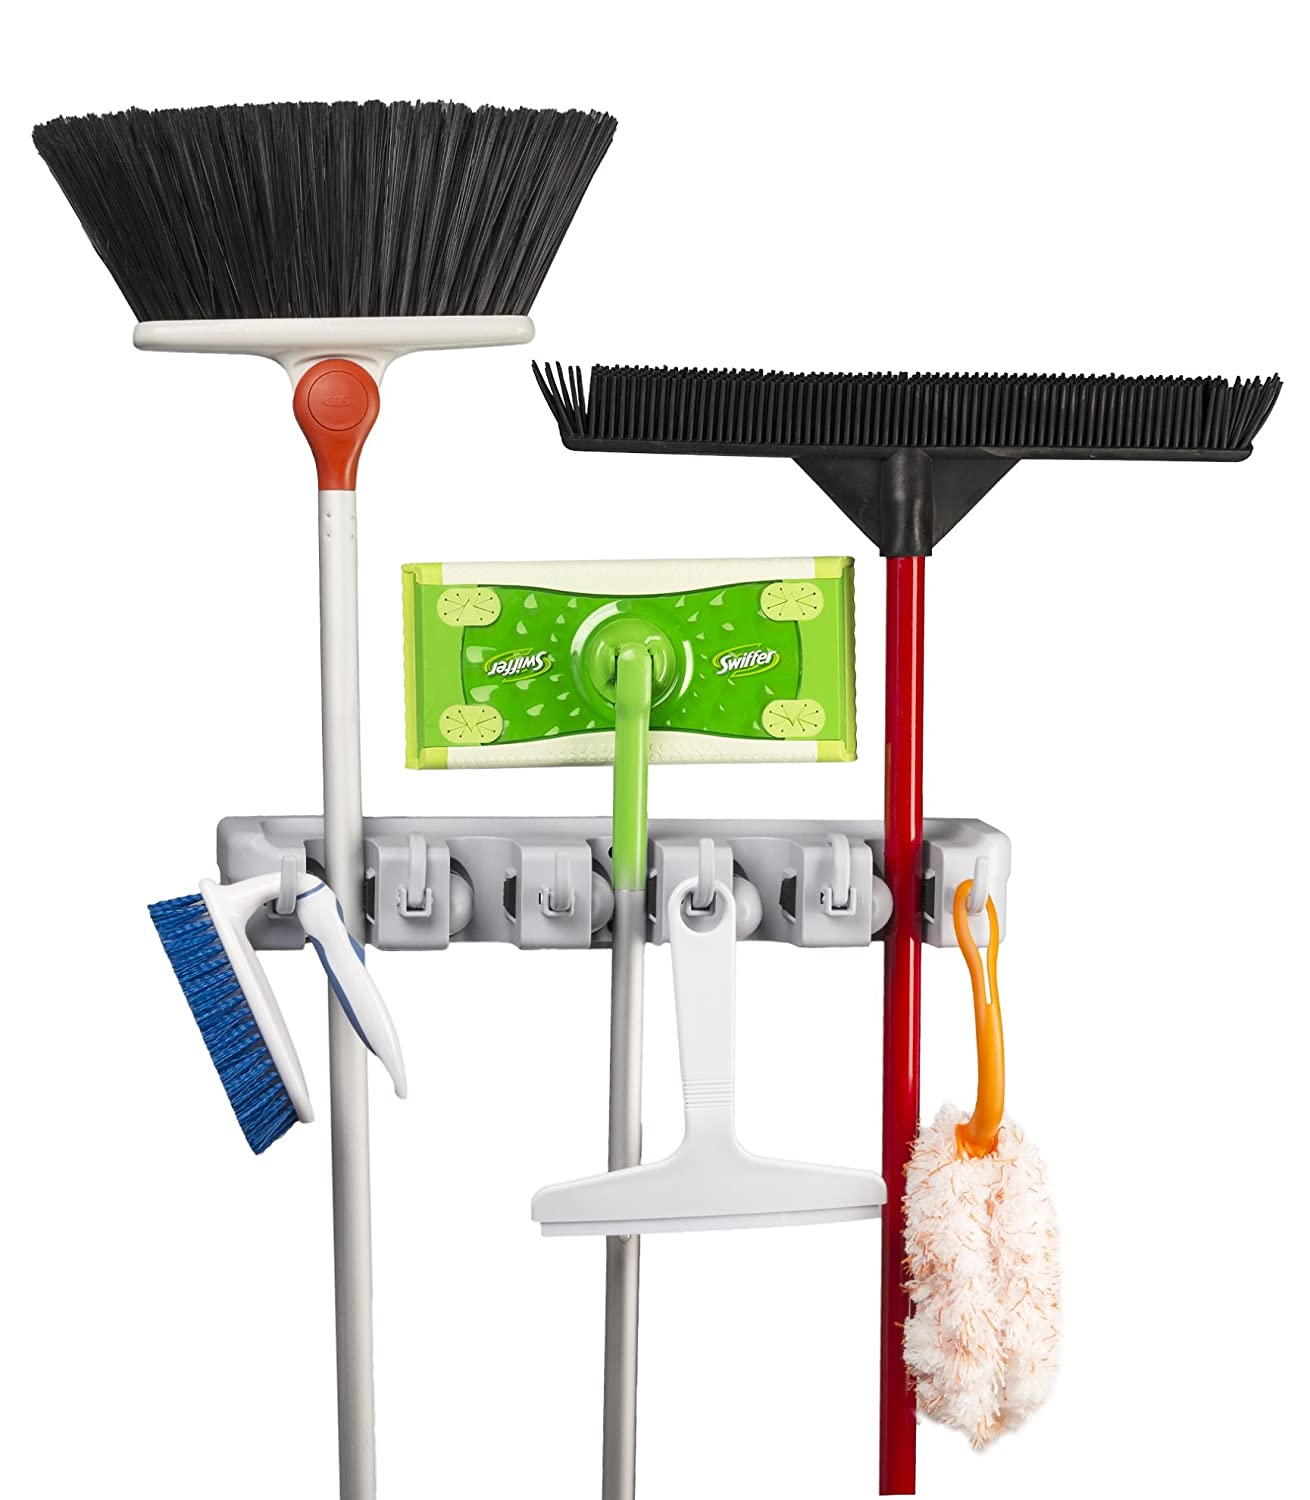 Spoga Wall Mounted Mop, Broom, and Sports Equipment Storage Organiser 0032A